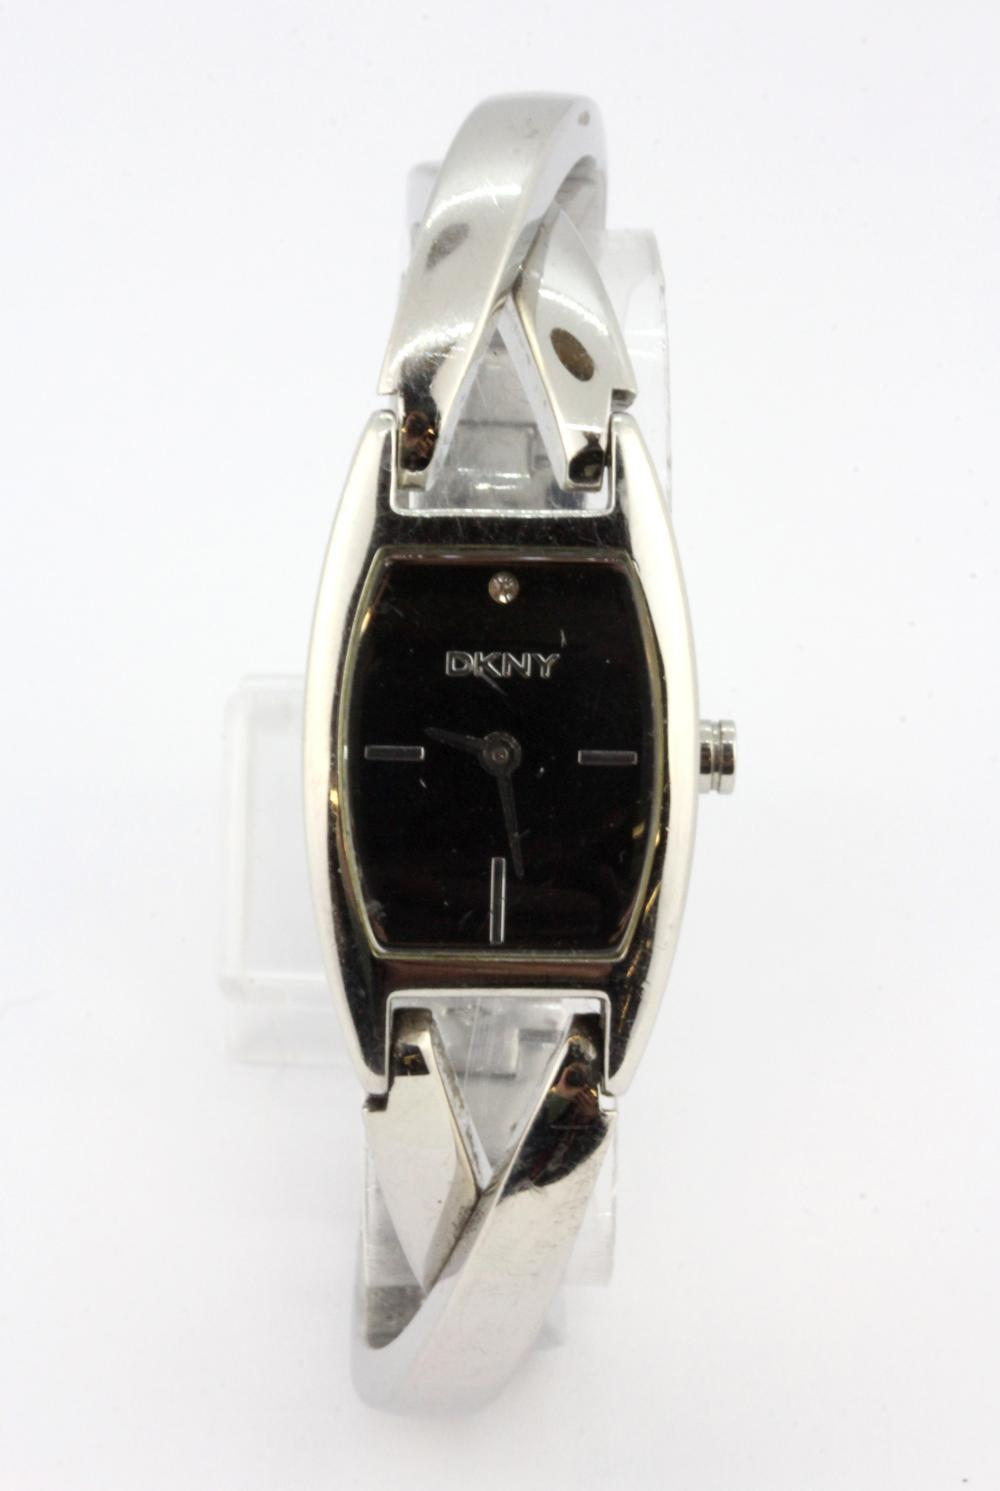 A boxed lady's DKNY wrist watch.